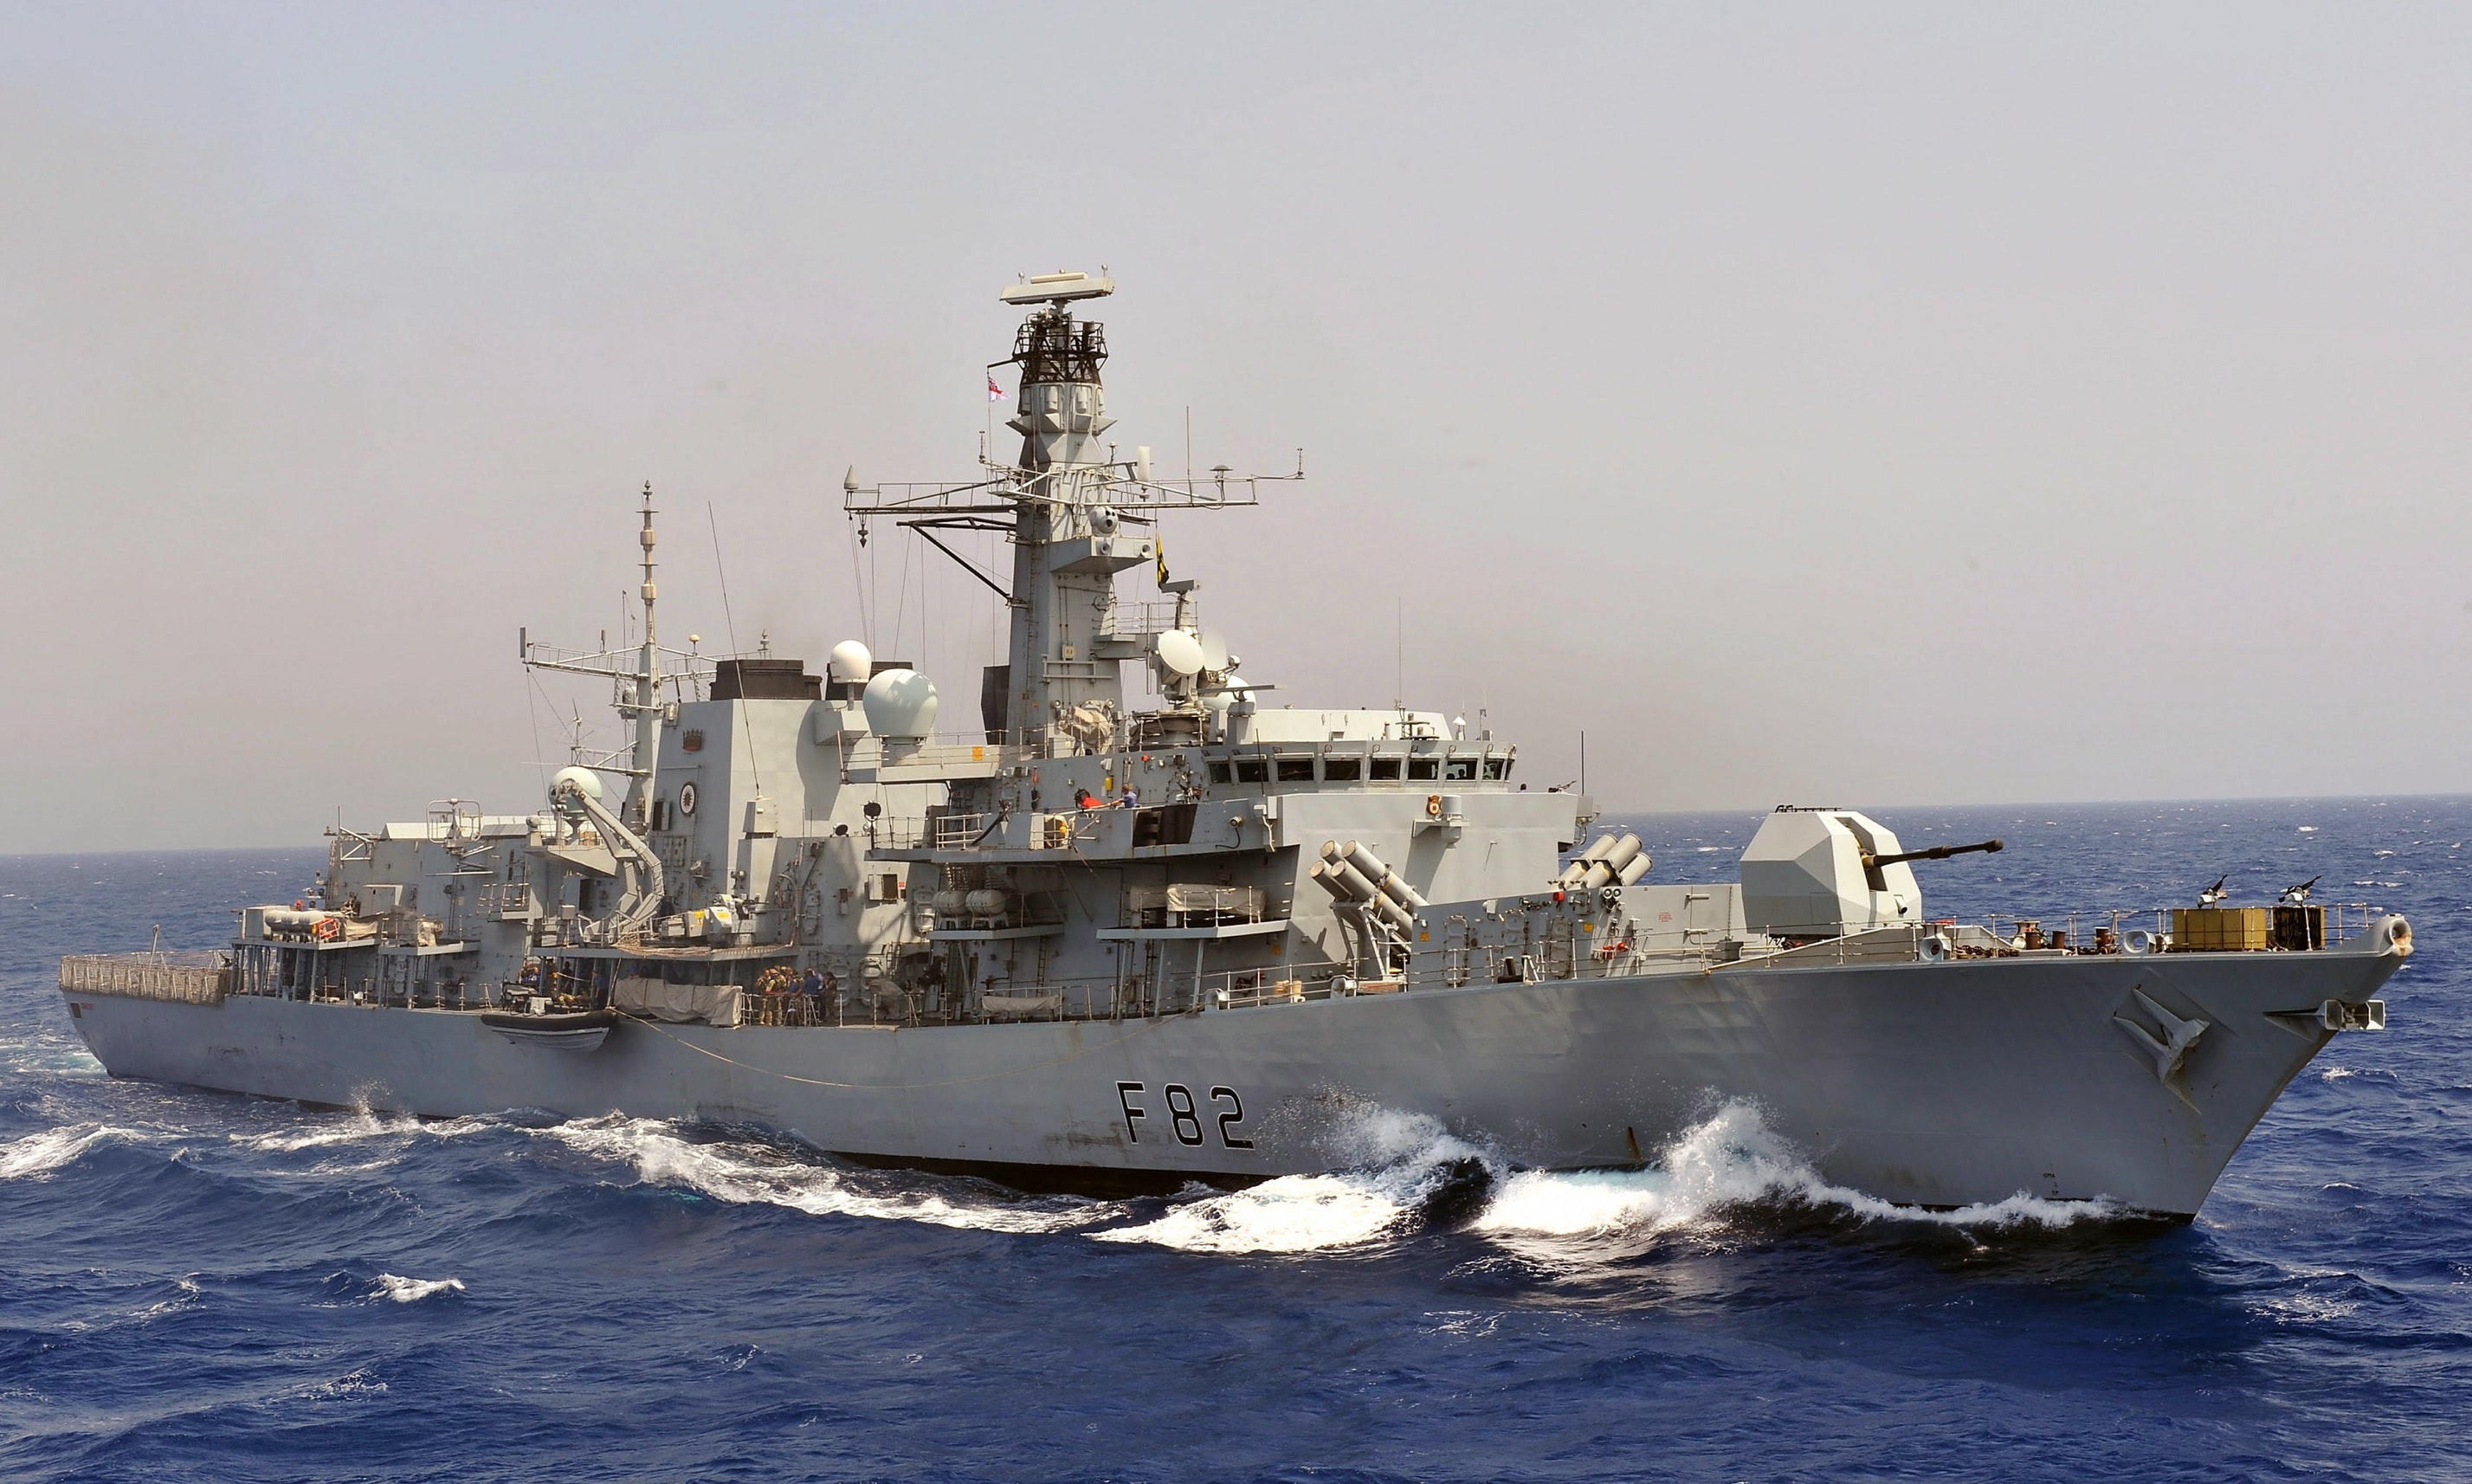 Royal Navy Type 23 frigate HMS Somerset is pictured during counter piracy operations in the Indian Ocean. Photo: LA(Phot) Abbie Gadd/MOD [OGL (http://www.nationalarchives.gov.uk/doc/open-government-licence/version/1/)], via Wikimedia Commons.